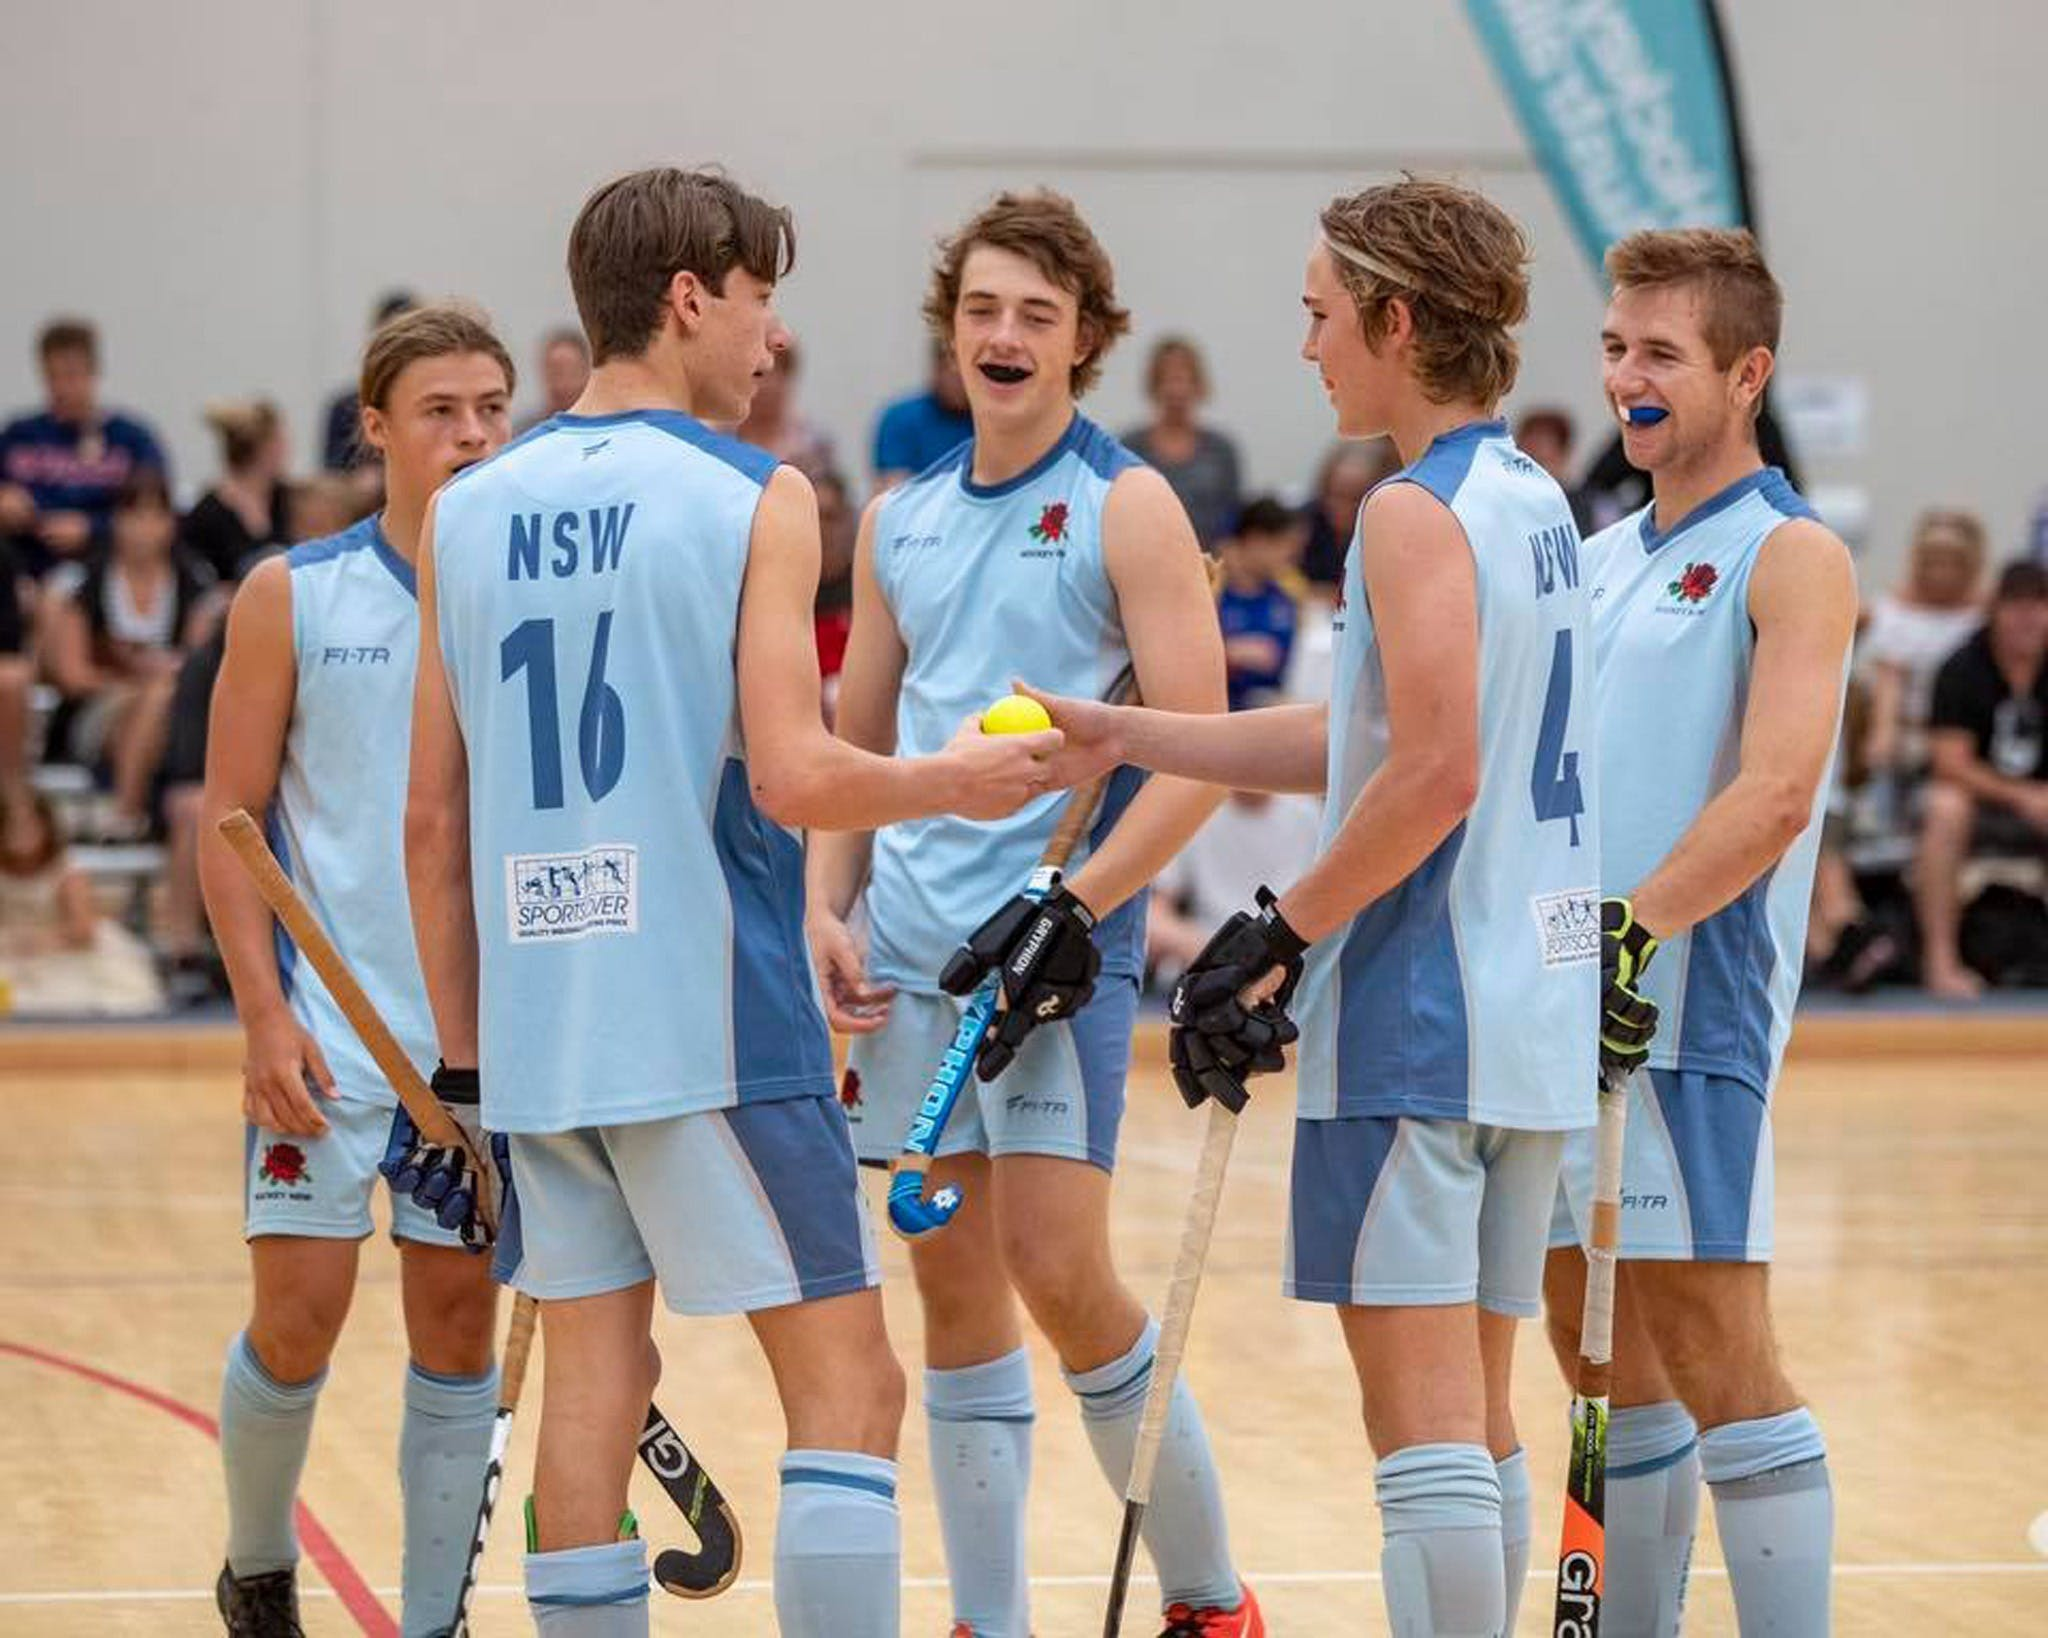 Hockey NSW Indoor State Championship  Open Men - Surfers Gold Coast